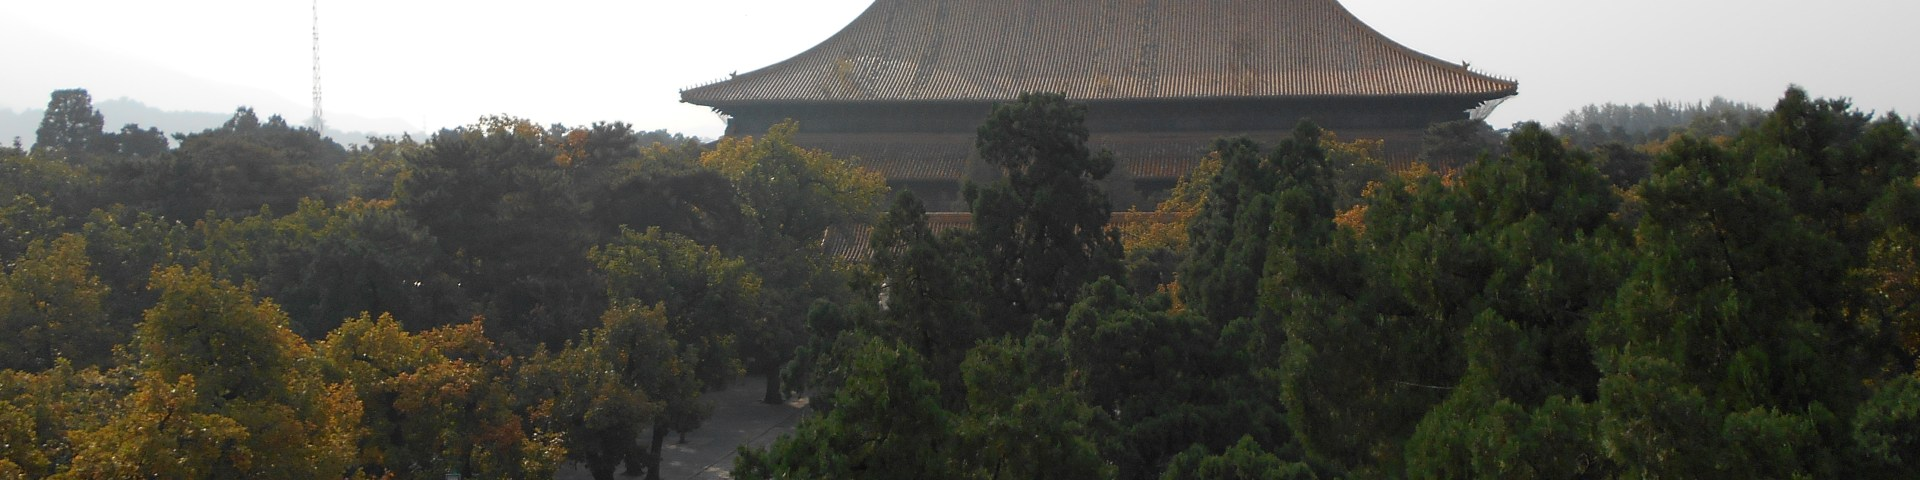 Changling Ming Tombs